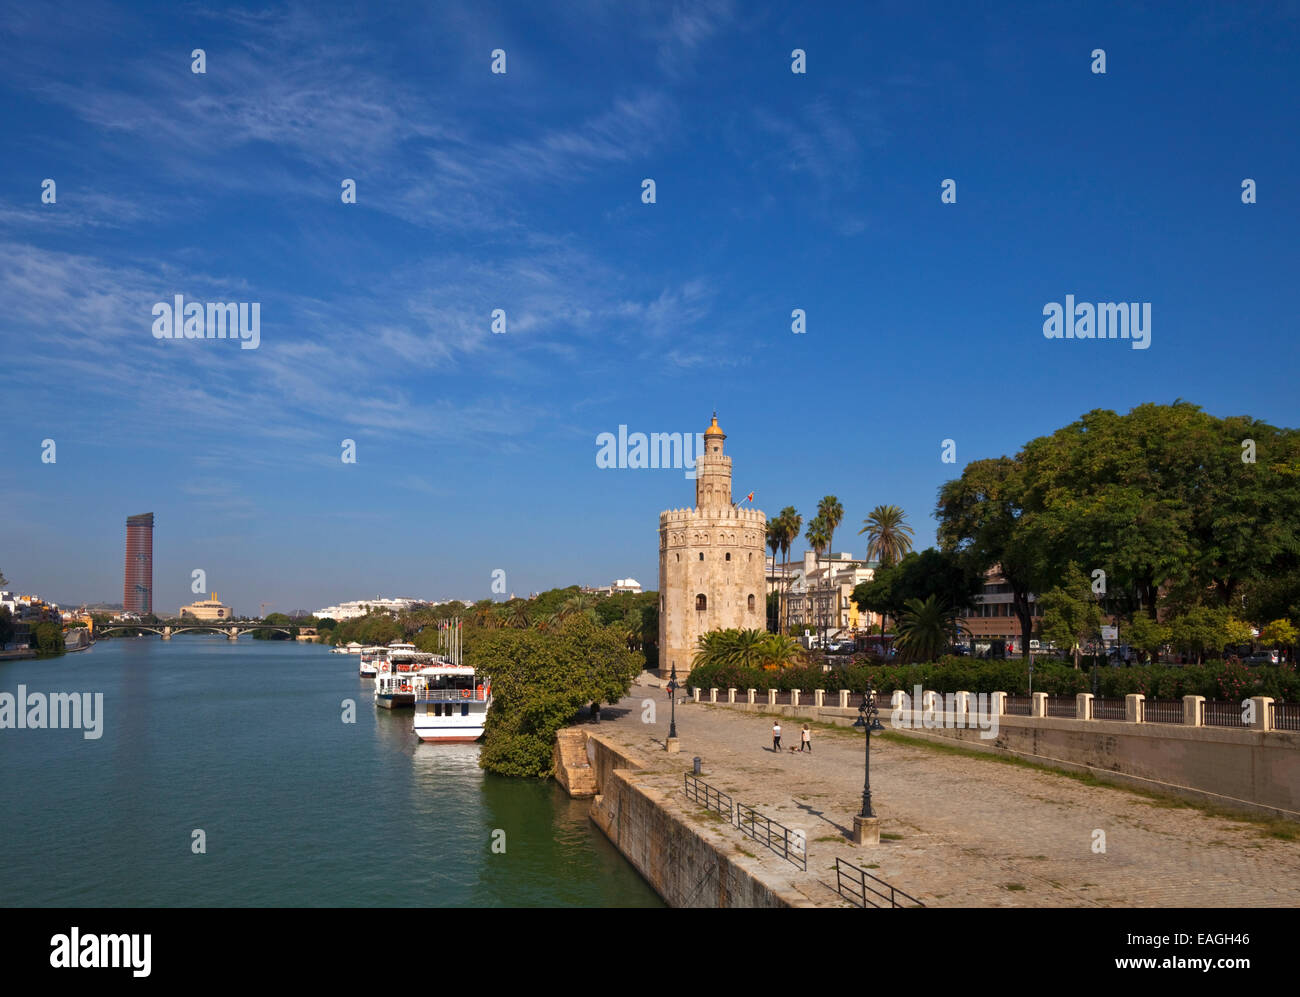 """The Torre del Oro or """"Gold Tower"""" military watchtower erected by the Almohad Caliphate in 1220-1221, Seville,  Andalucia, Stock Photo"""